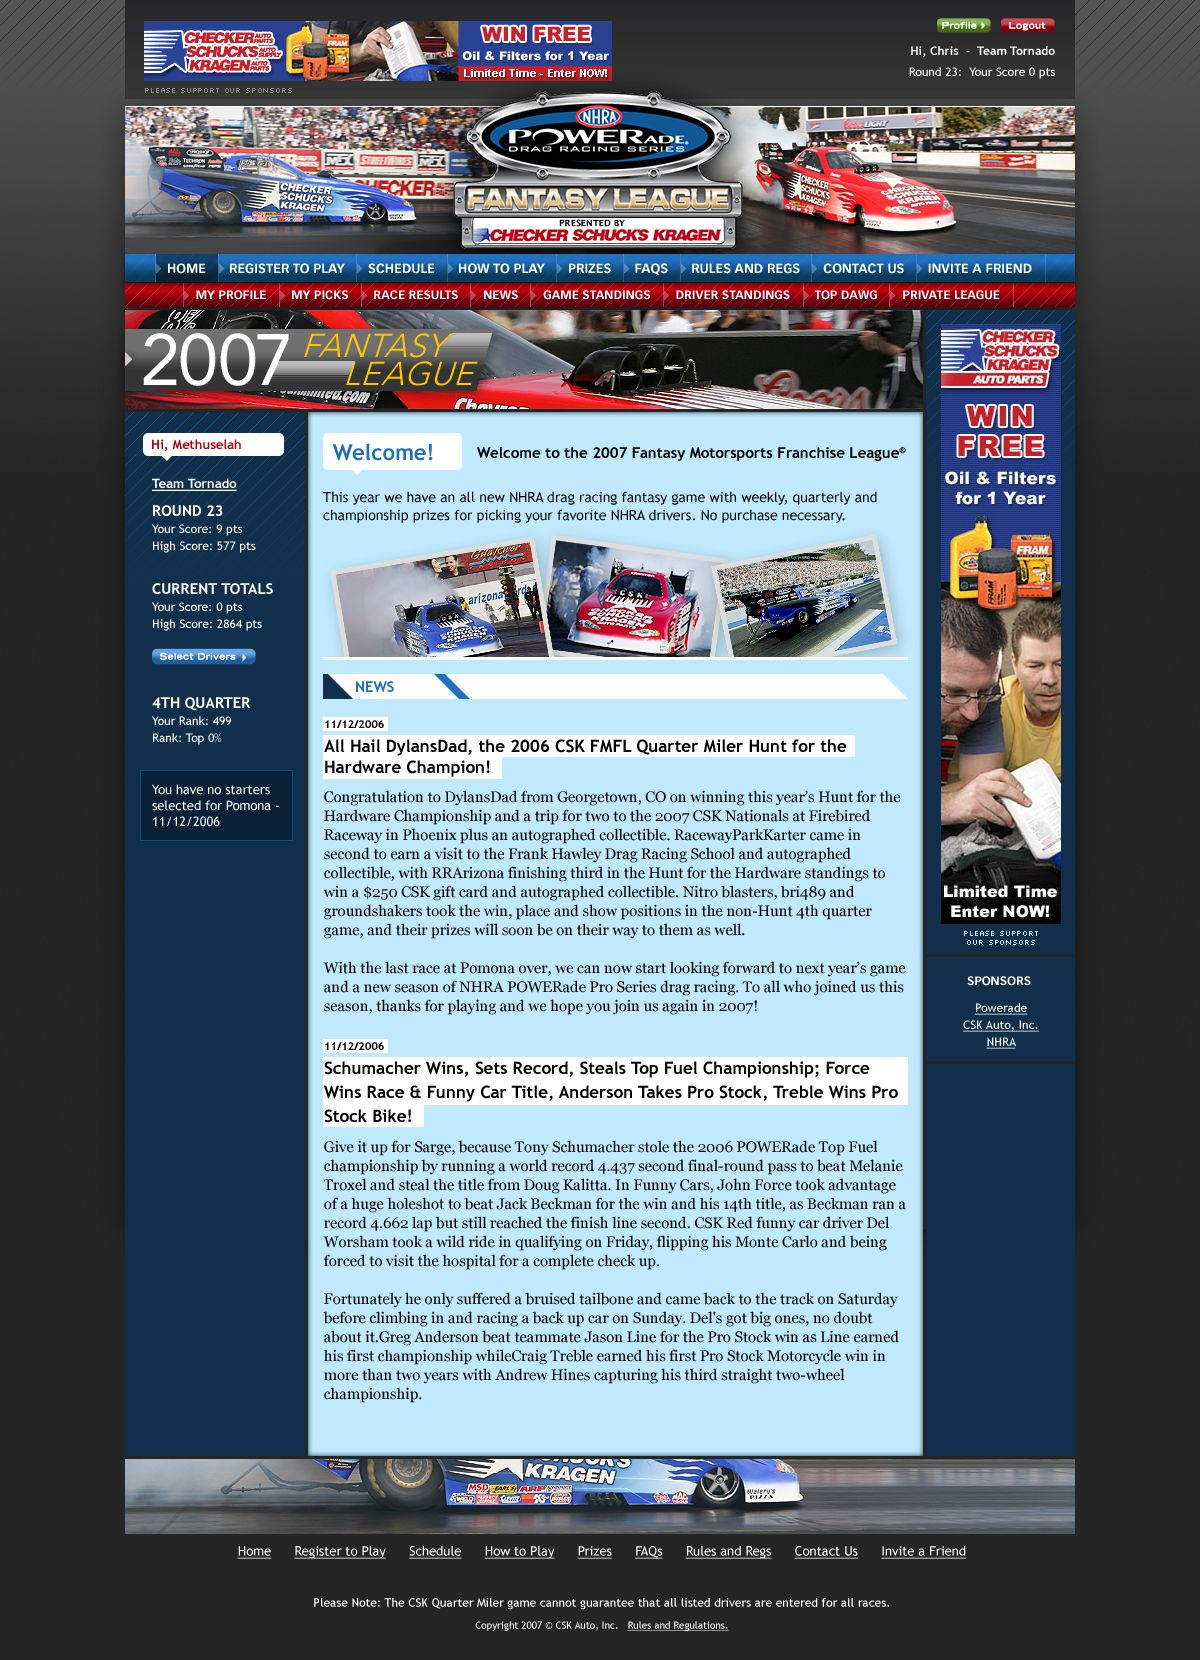 NHRA Fantasy Motorsports dsign for CSK Auto